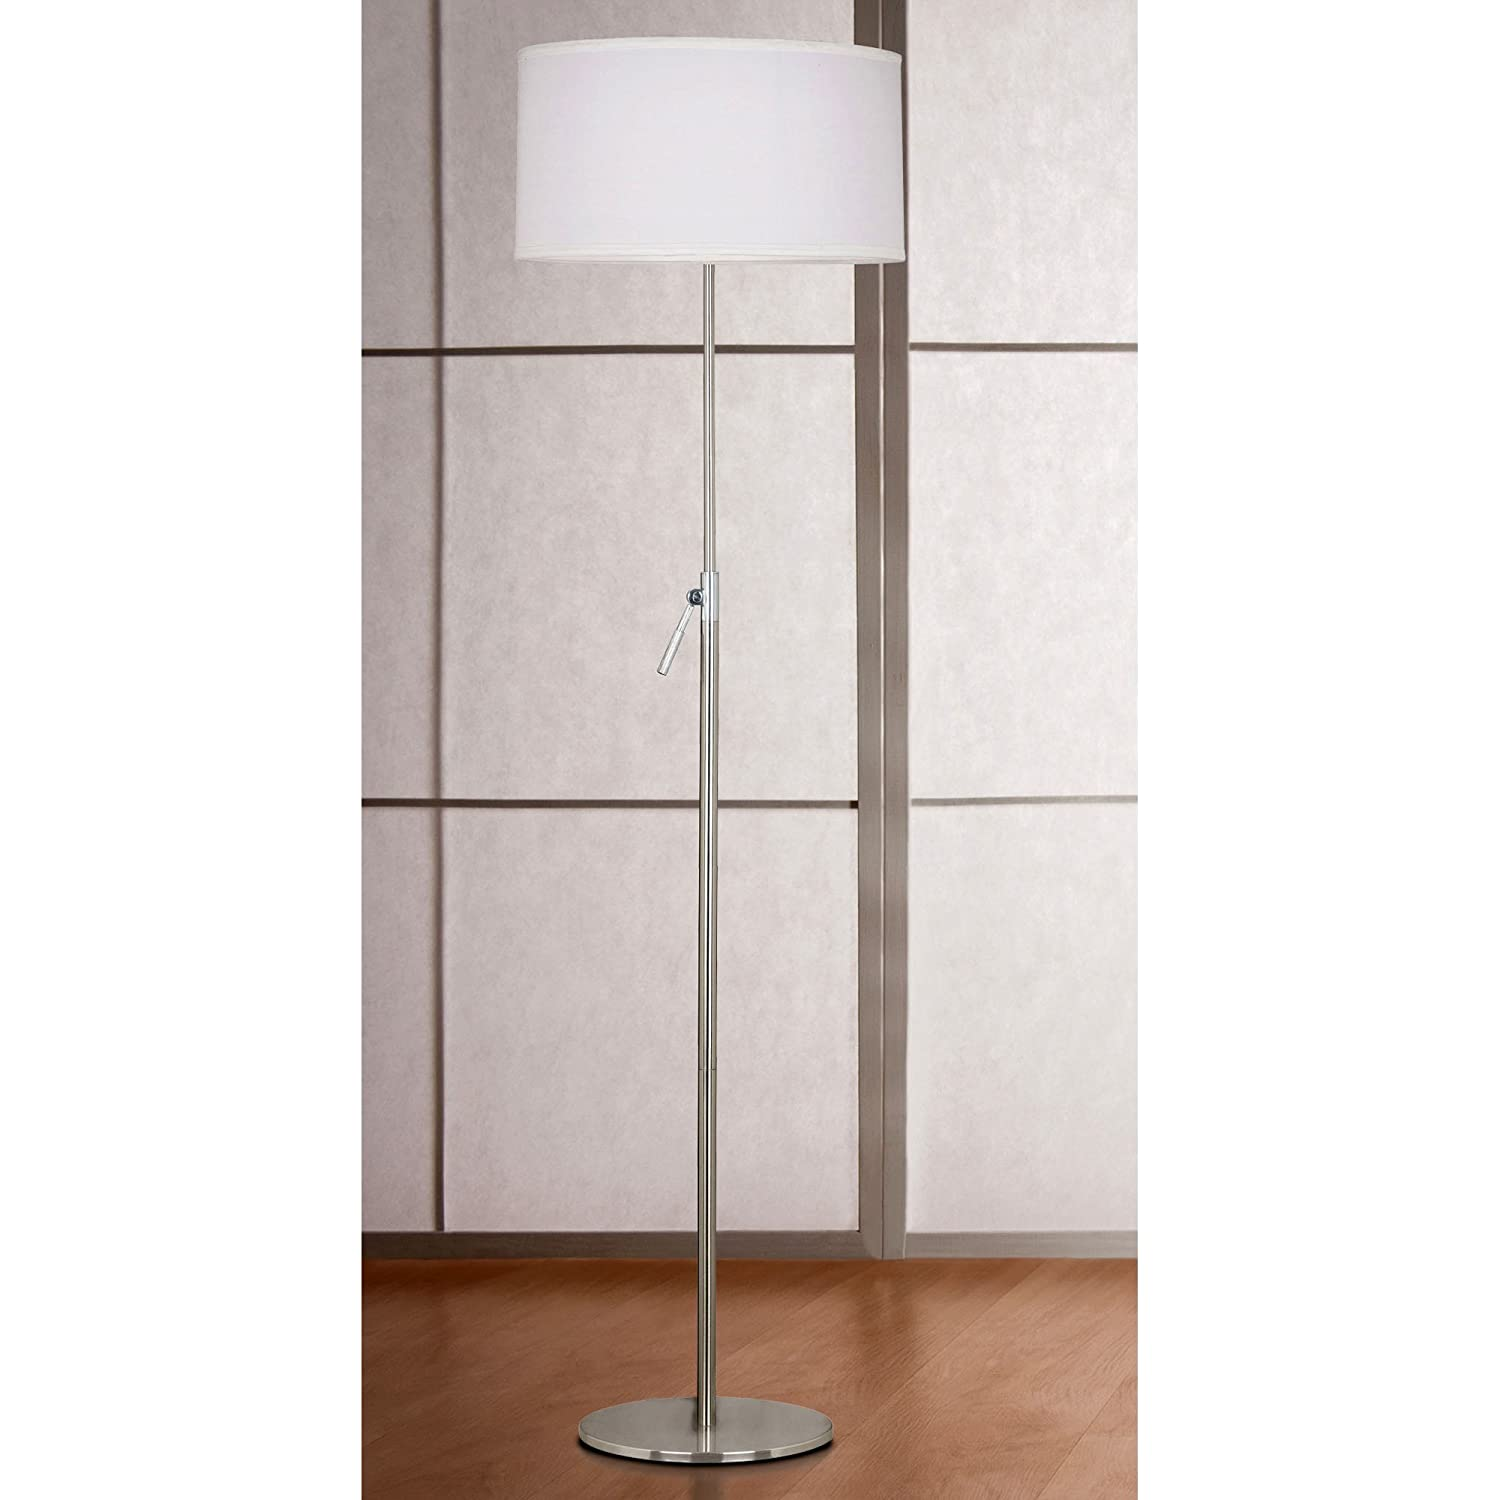 Kenroy Home 20111BS Propel Adjustable Floor Lamp, Brushed Steel   Floor  Lamps Modern   Amazon.com